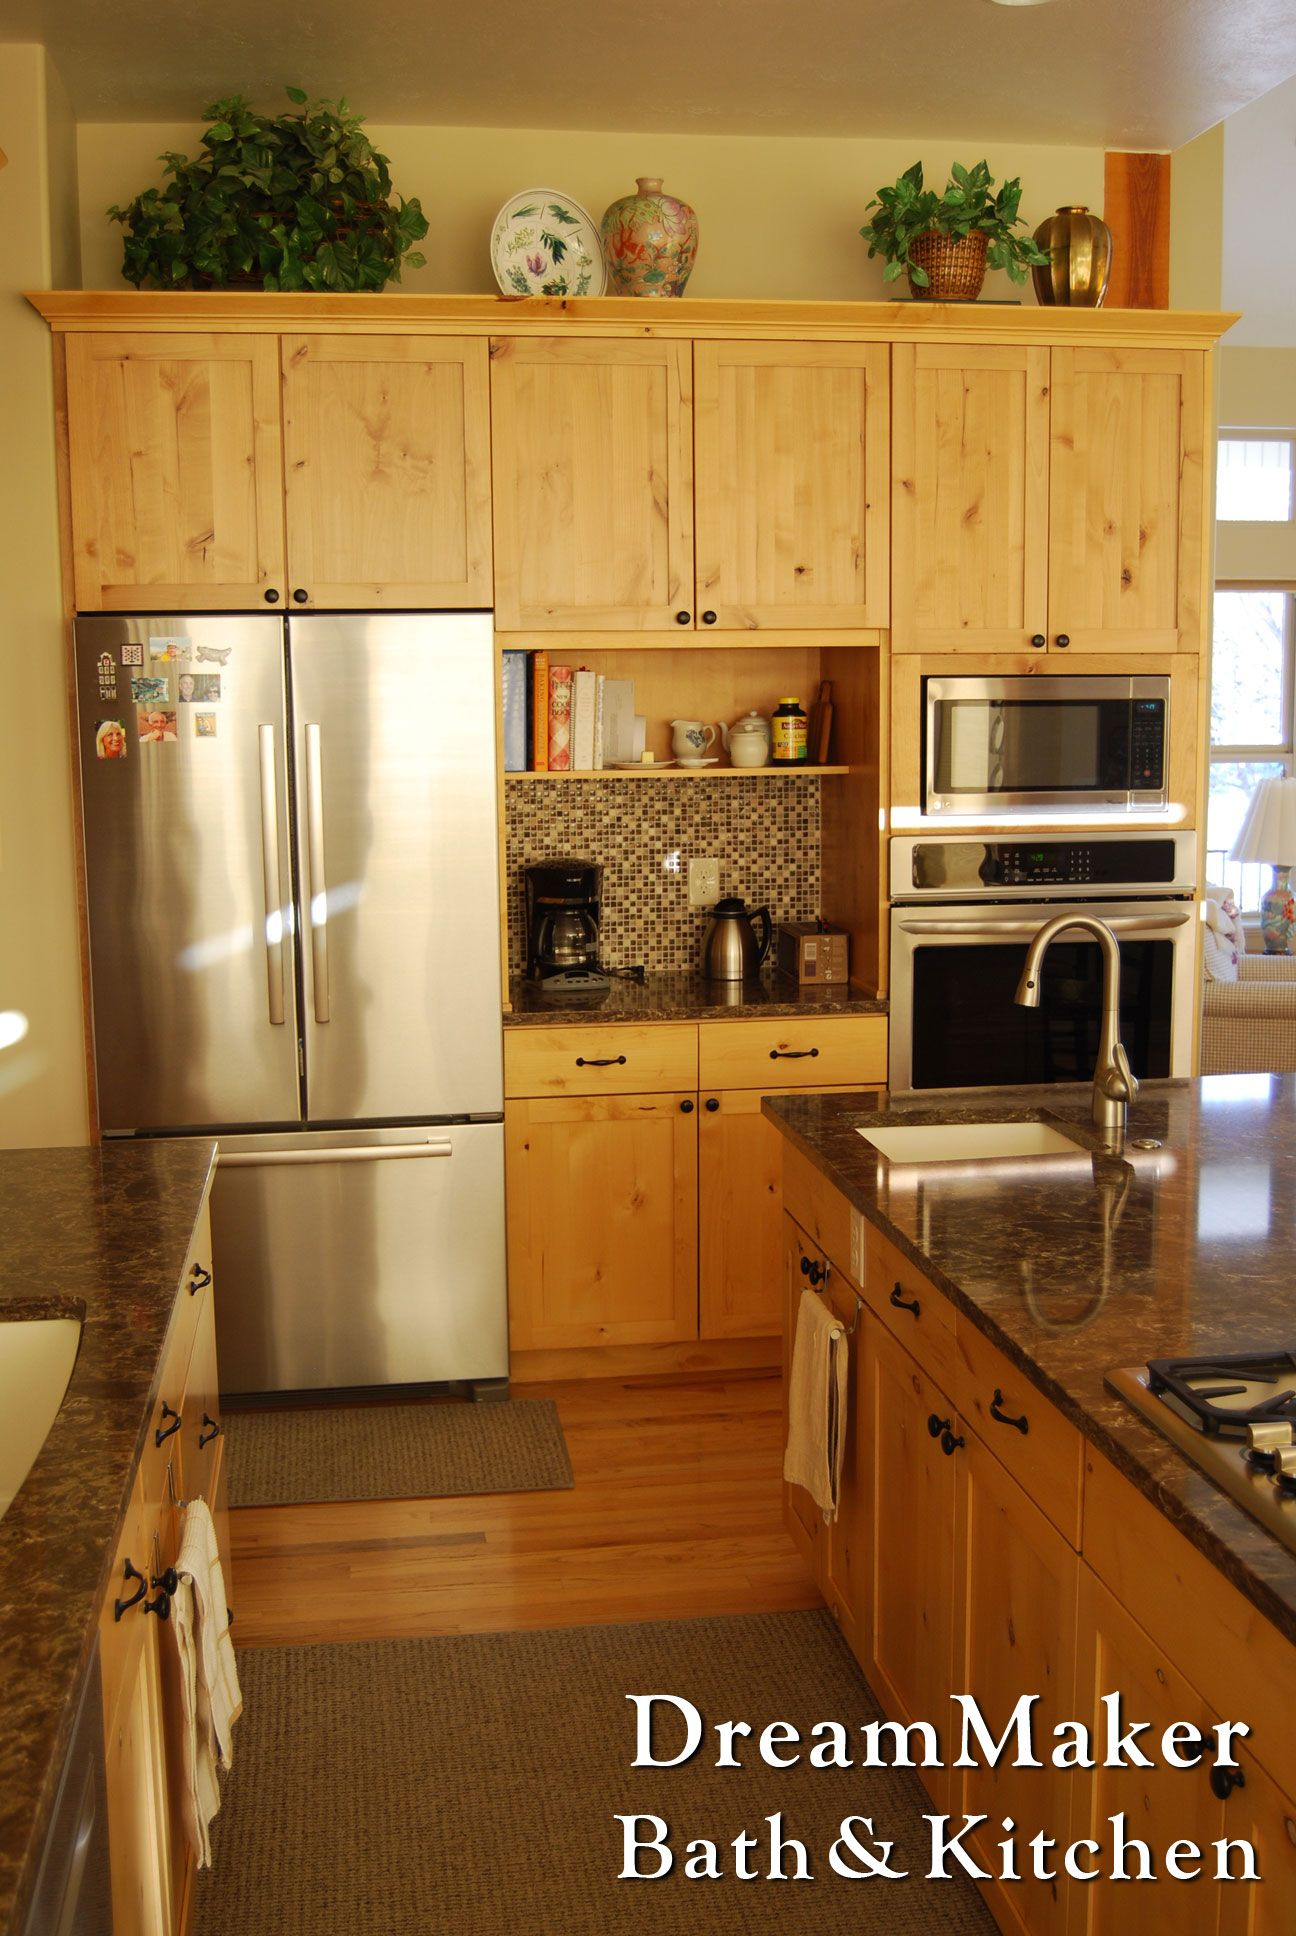 Natural Knotty Alder Cabinetry Paired With Quartz Countertops Gorgeous Bathroom Kitchen Remodeling Design Ideas